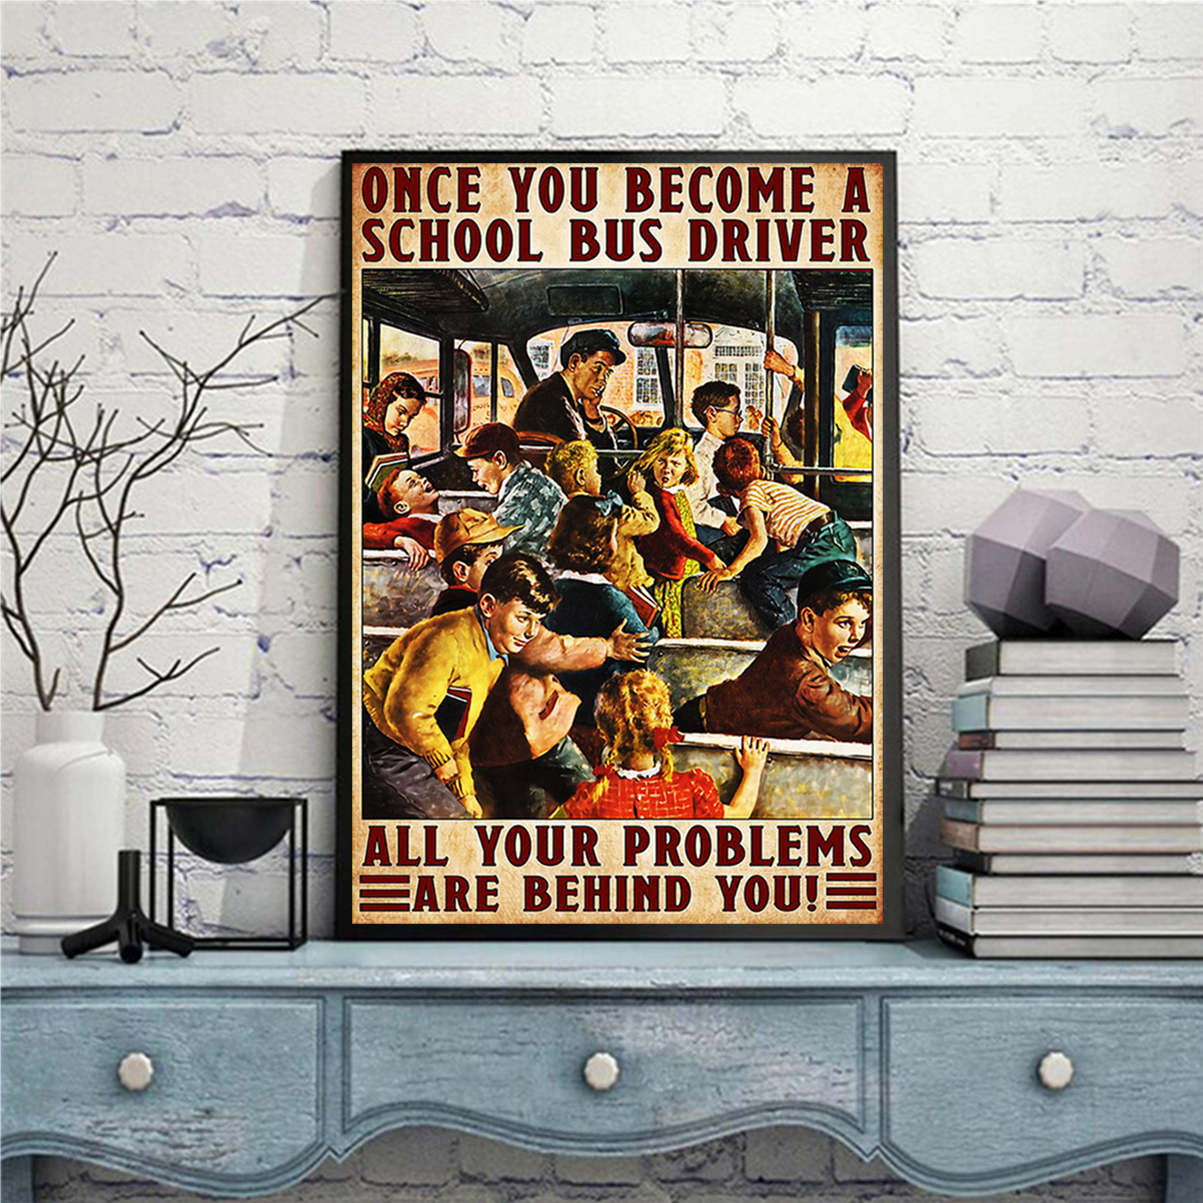 Once you become a school bus driver all your problems are behind you poster A1